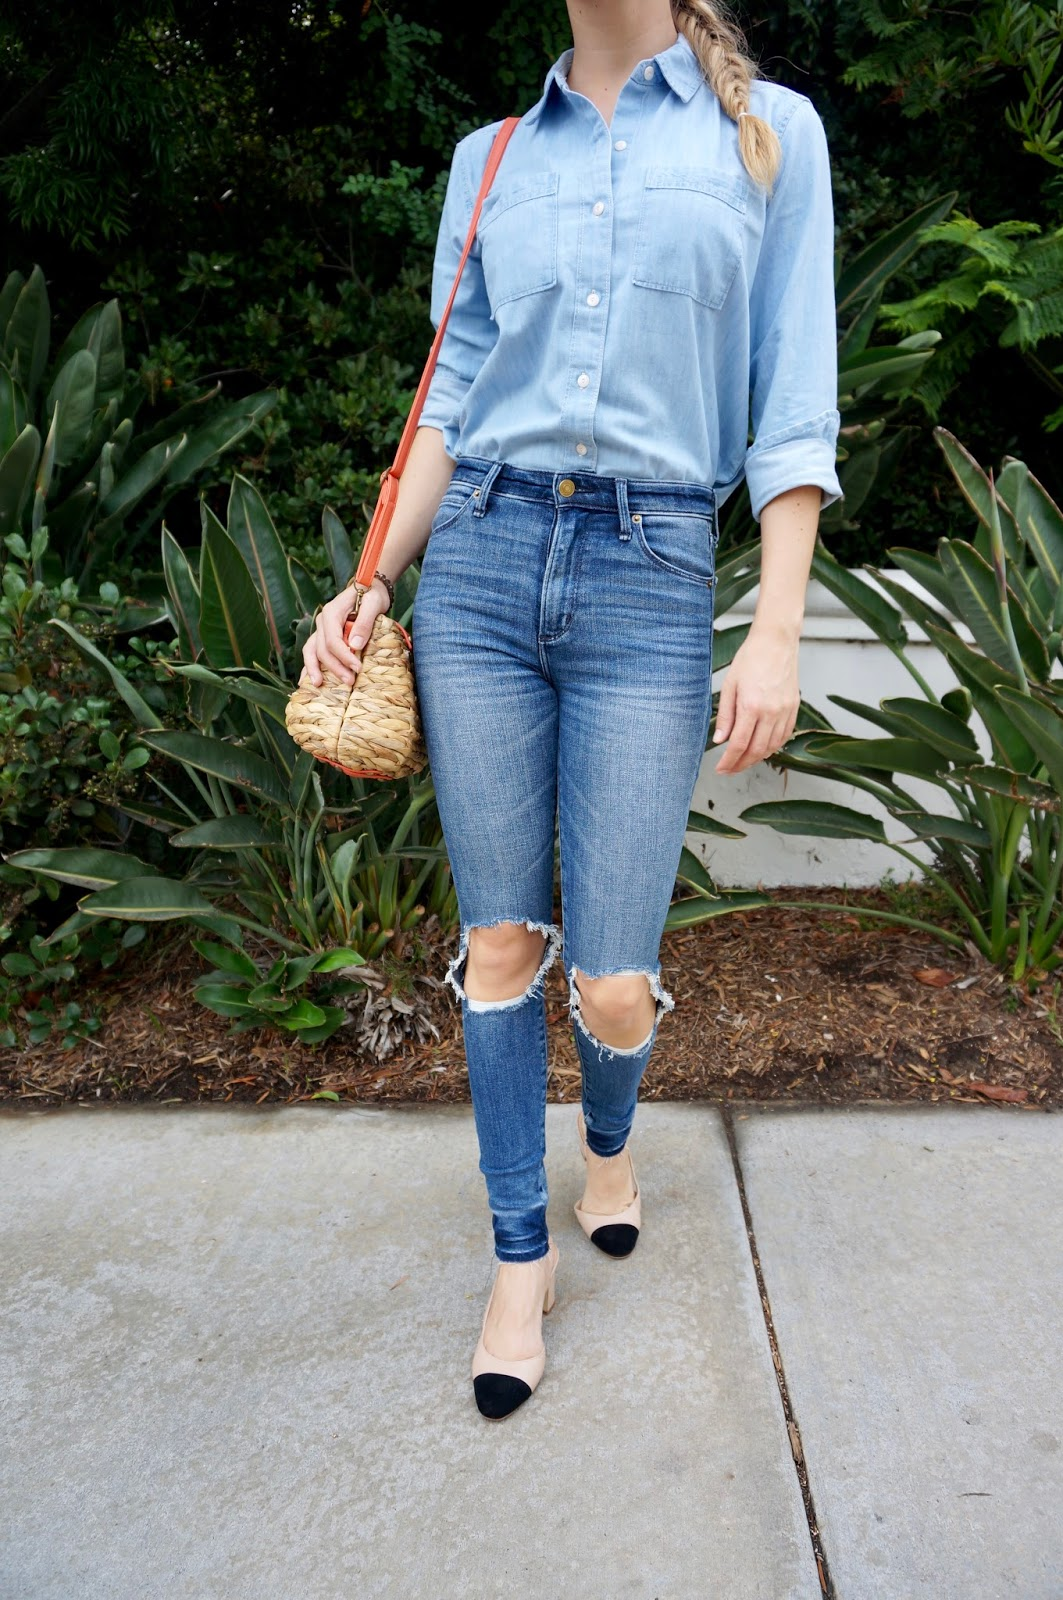 Abercrombie & Fitch denim outfit